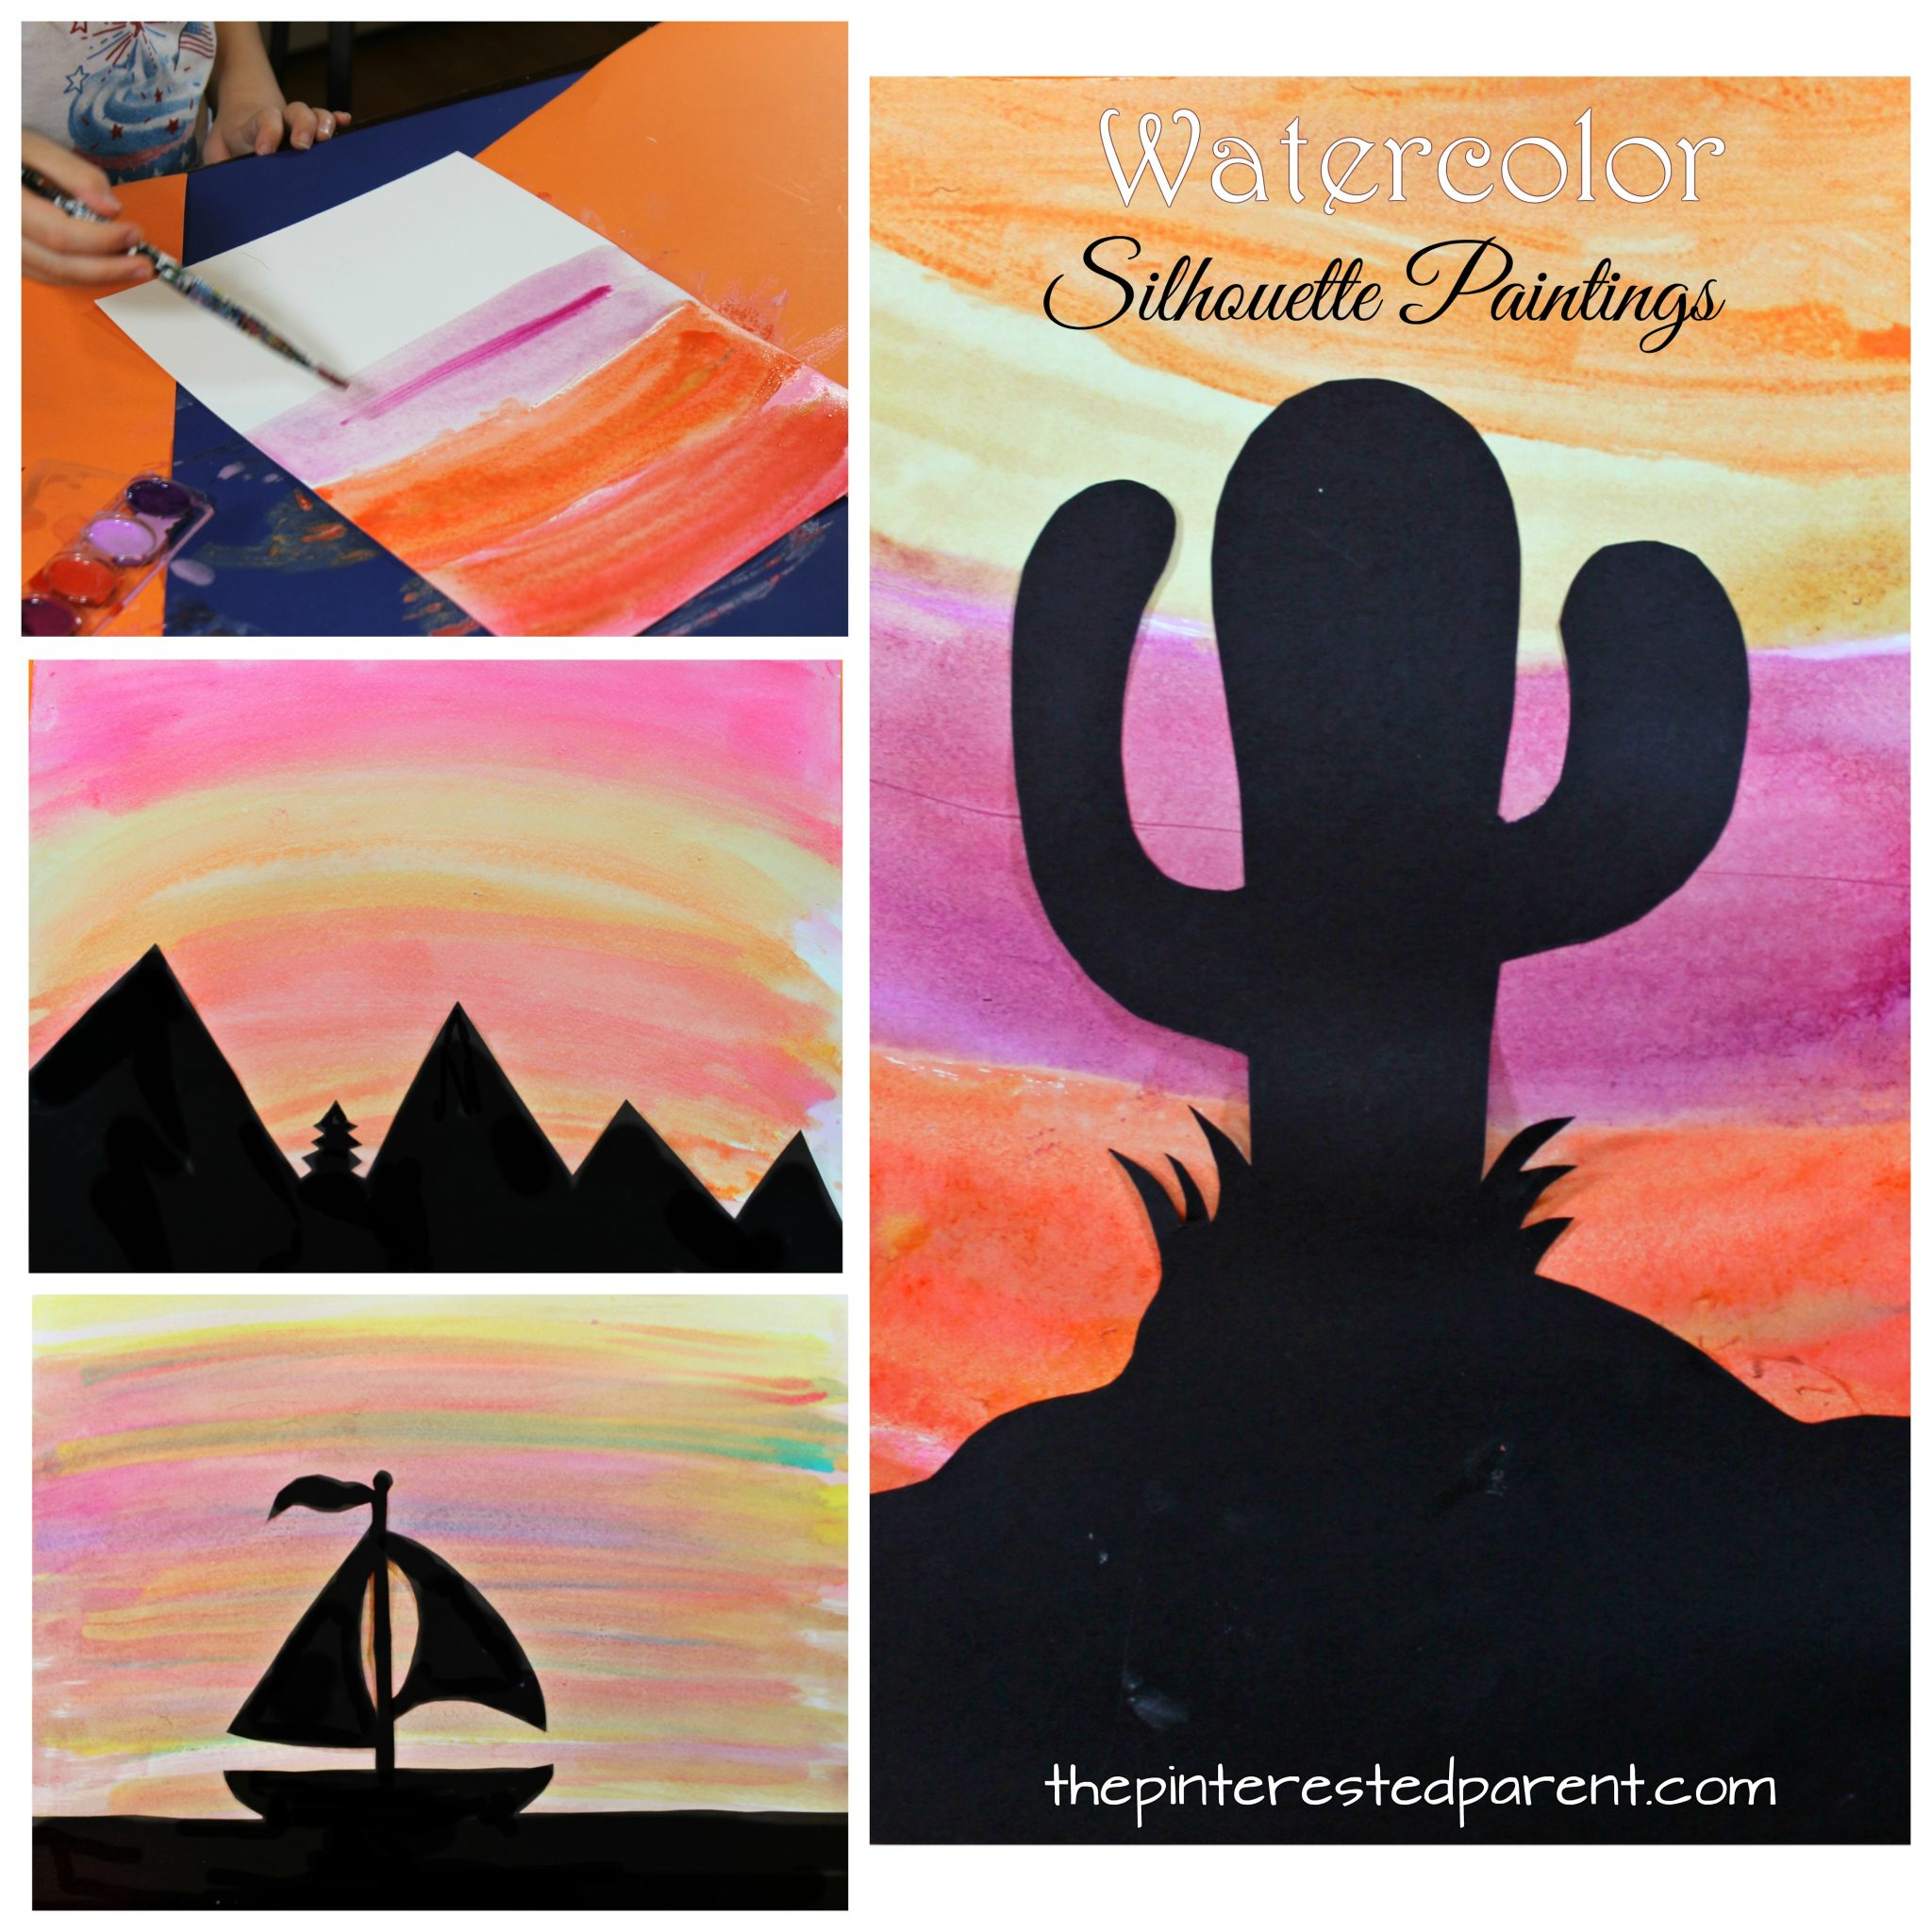 photograph regarding Free Printable Silhouettes named Watercolor Silhouette Surroundings The Pinterested Guardian